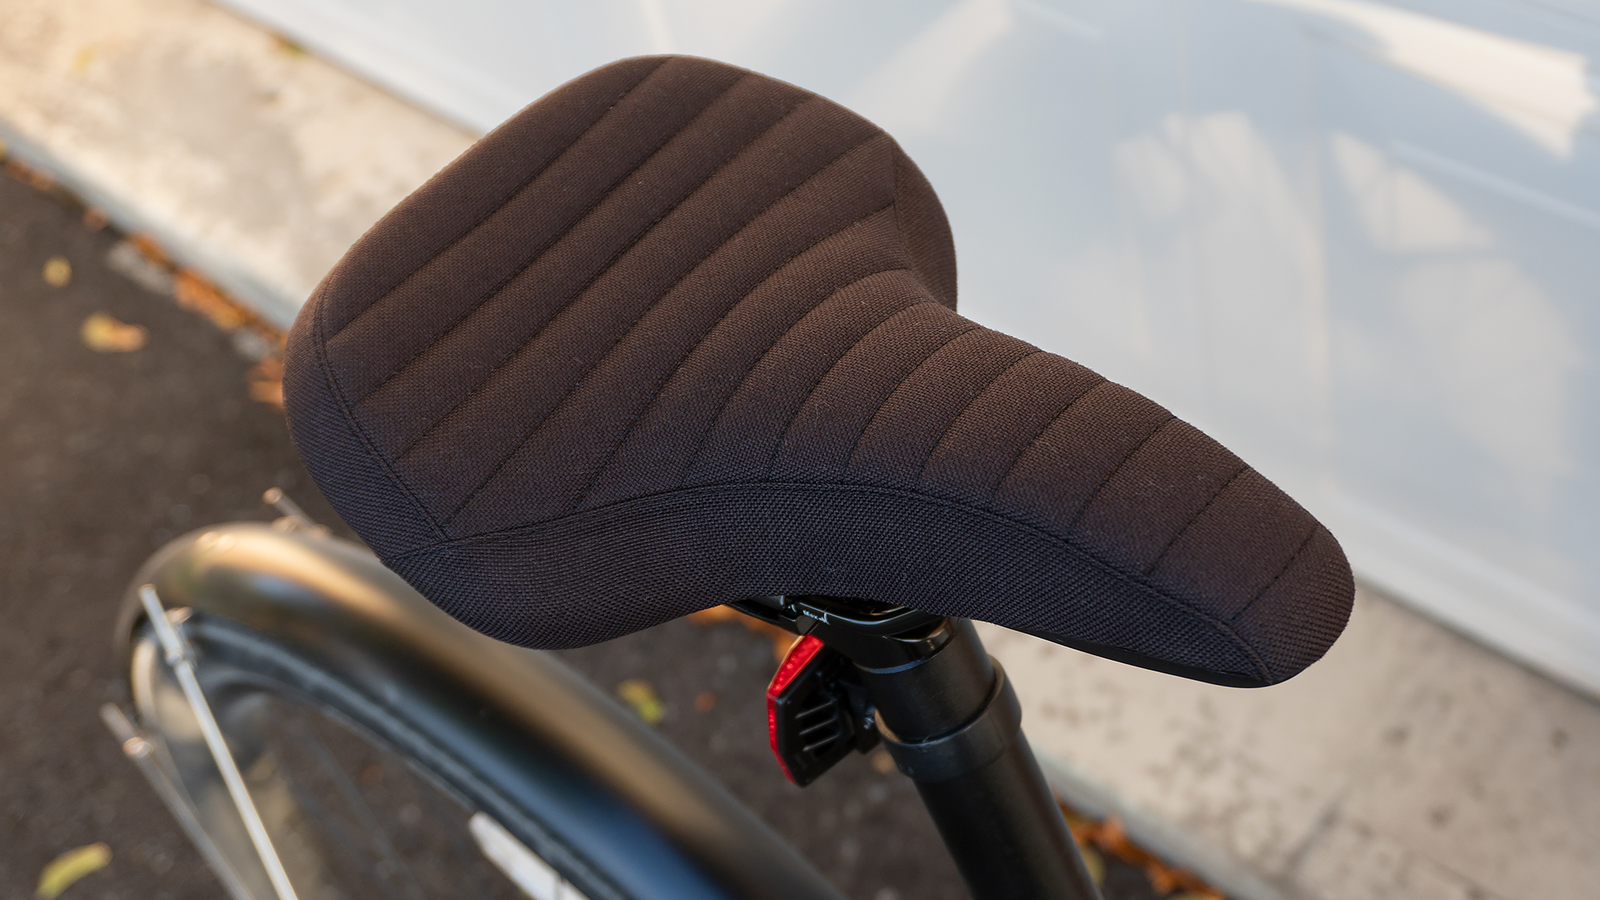 The Treadwell EQ's bike saddle is the most comfortable bicycle seat I've ever used.